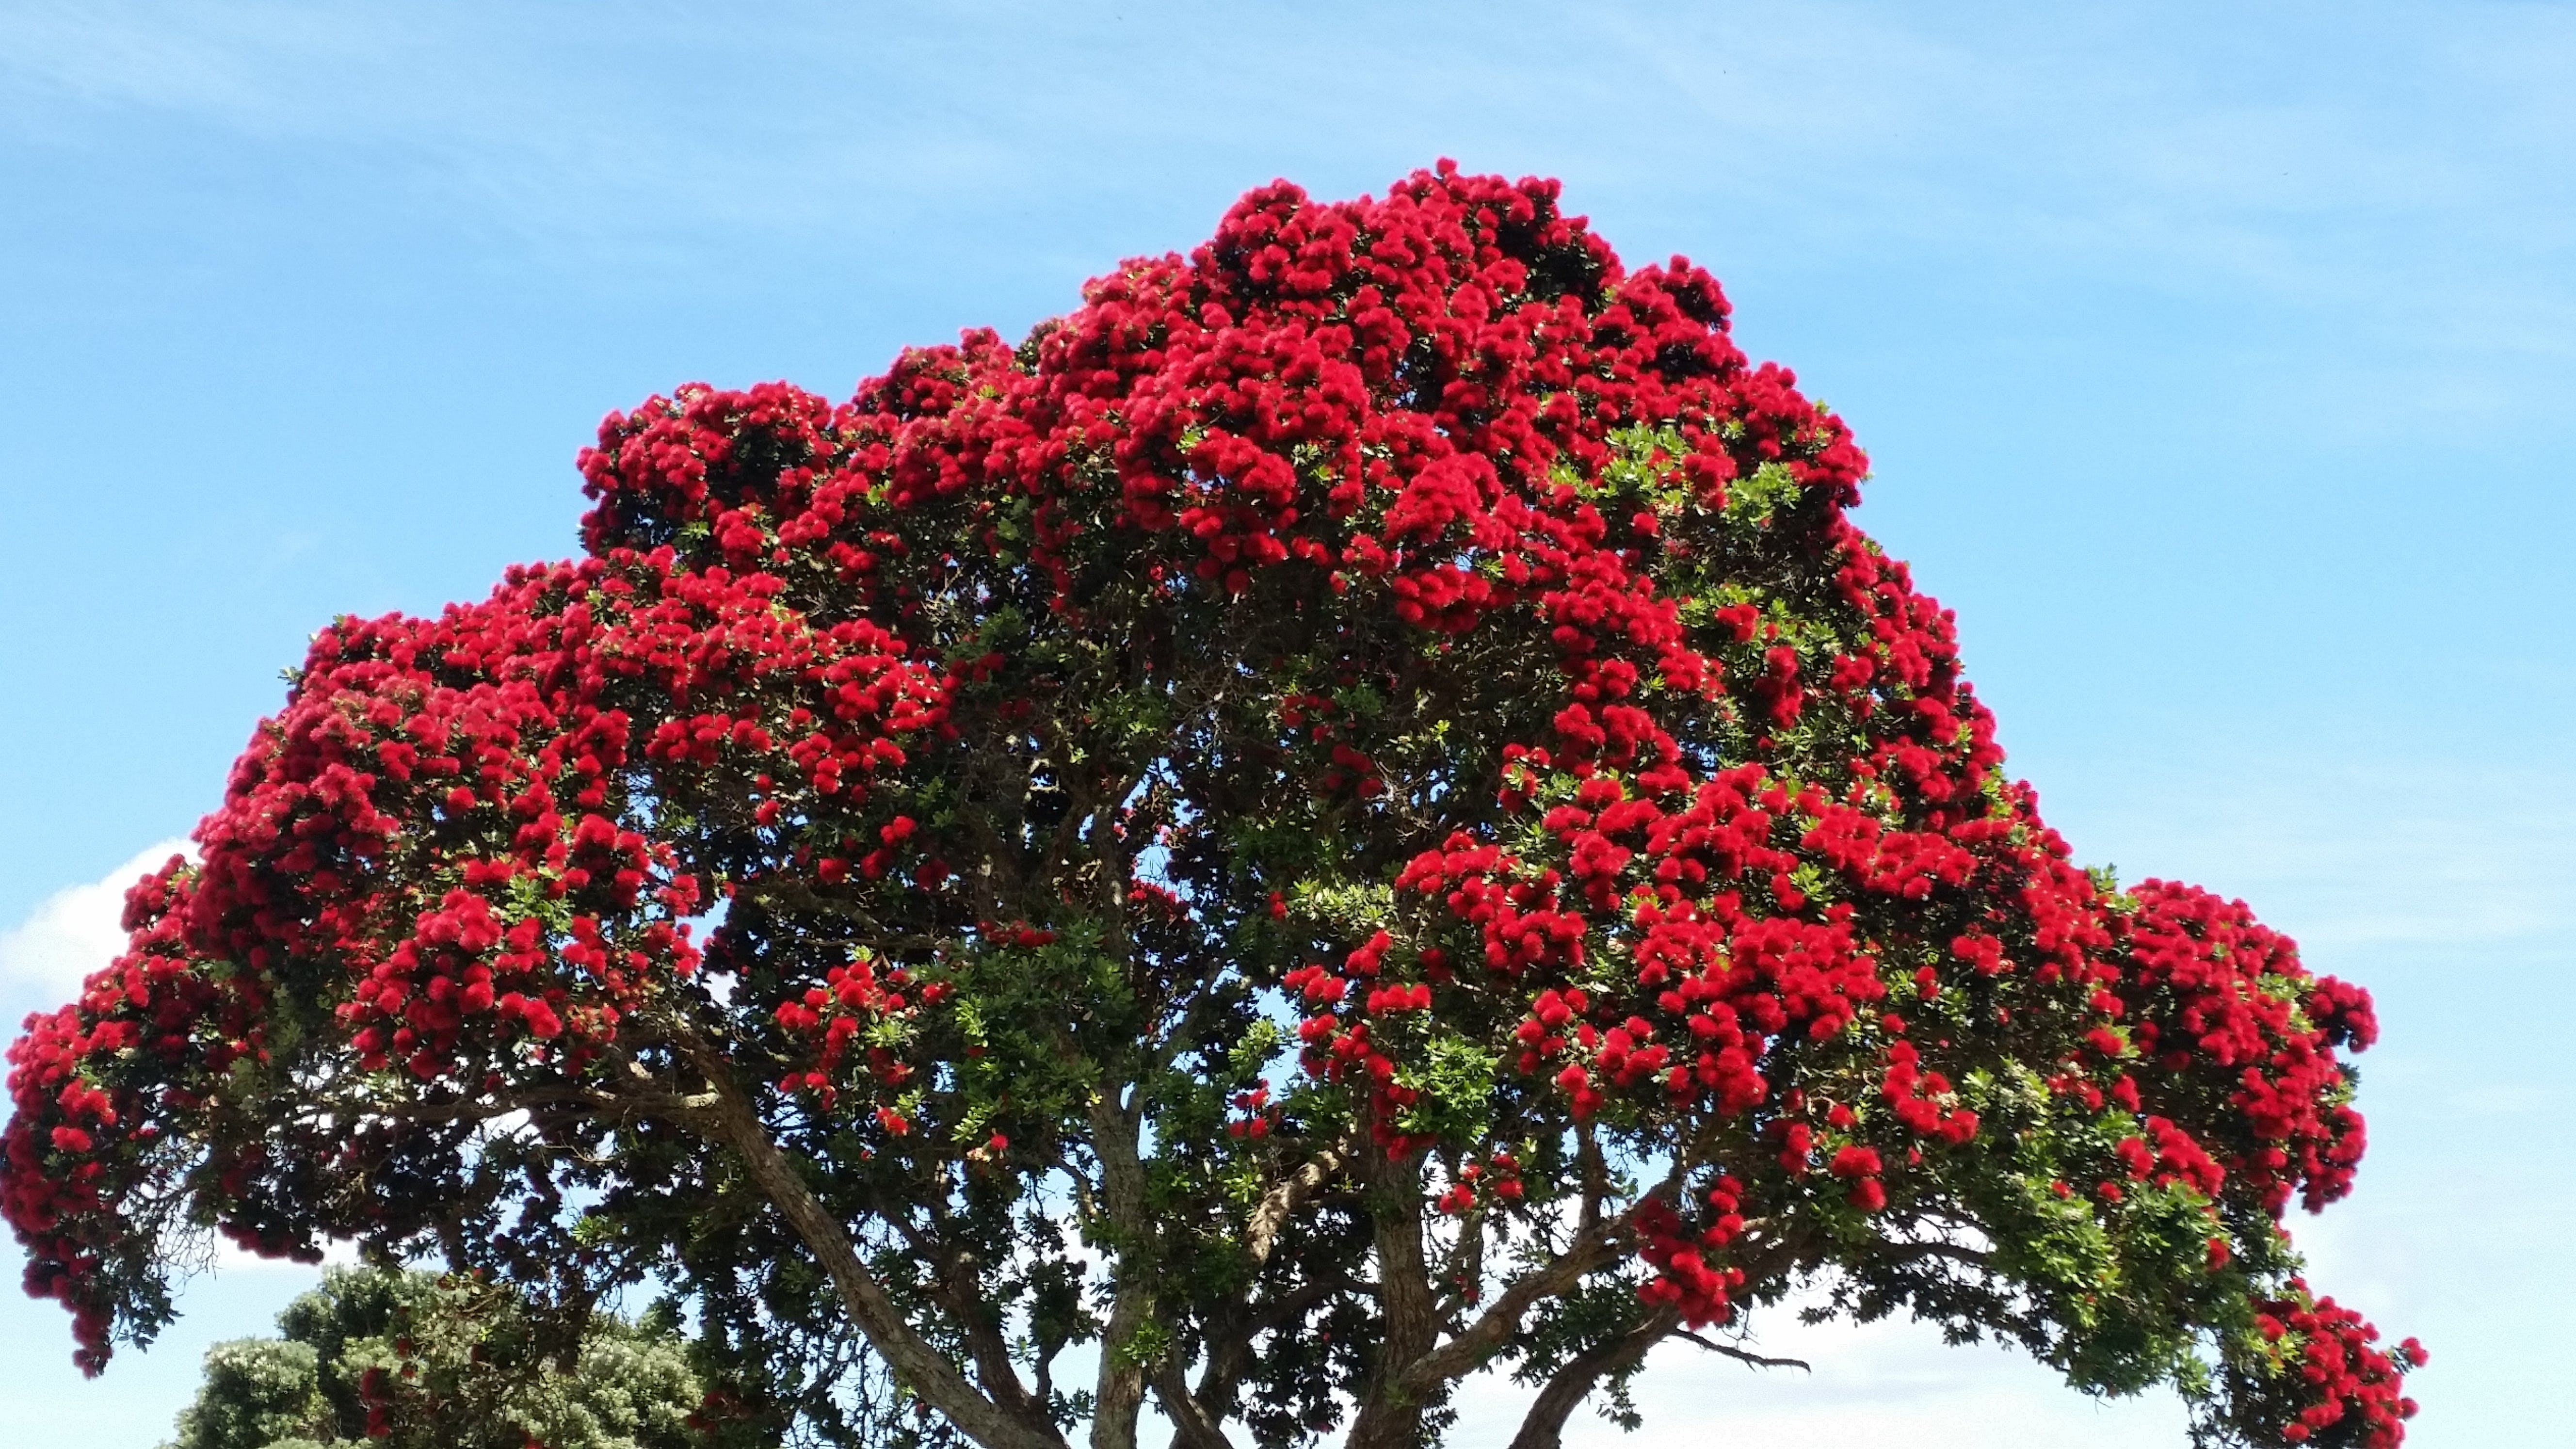 Red and Green Tree Under Blue Sky